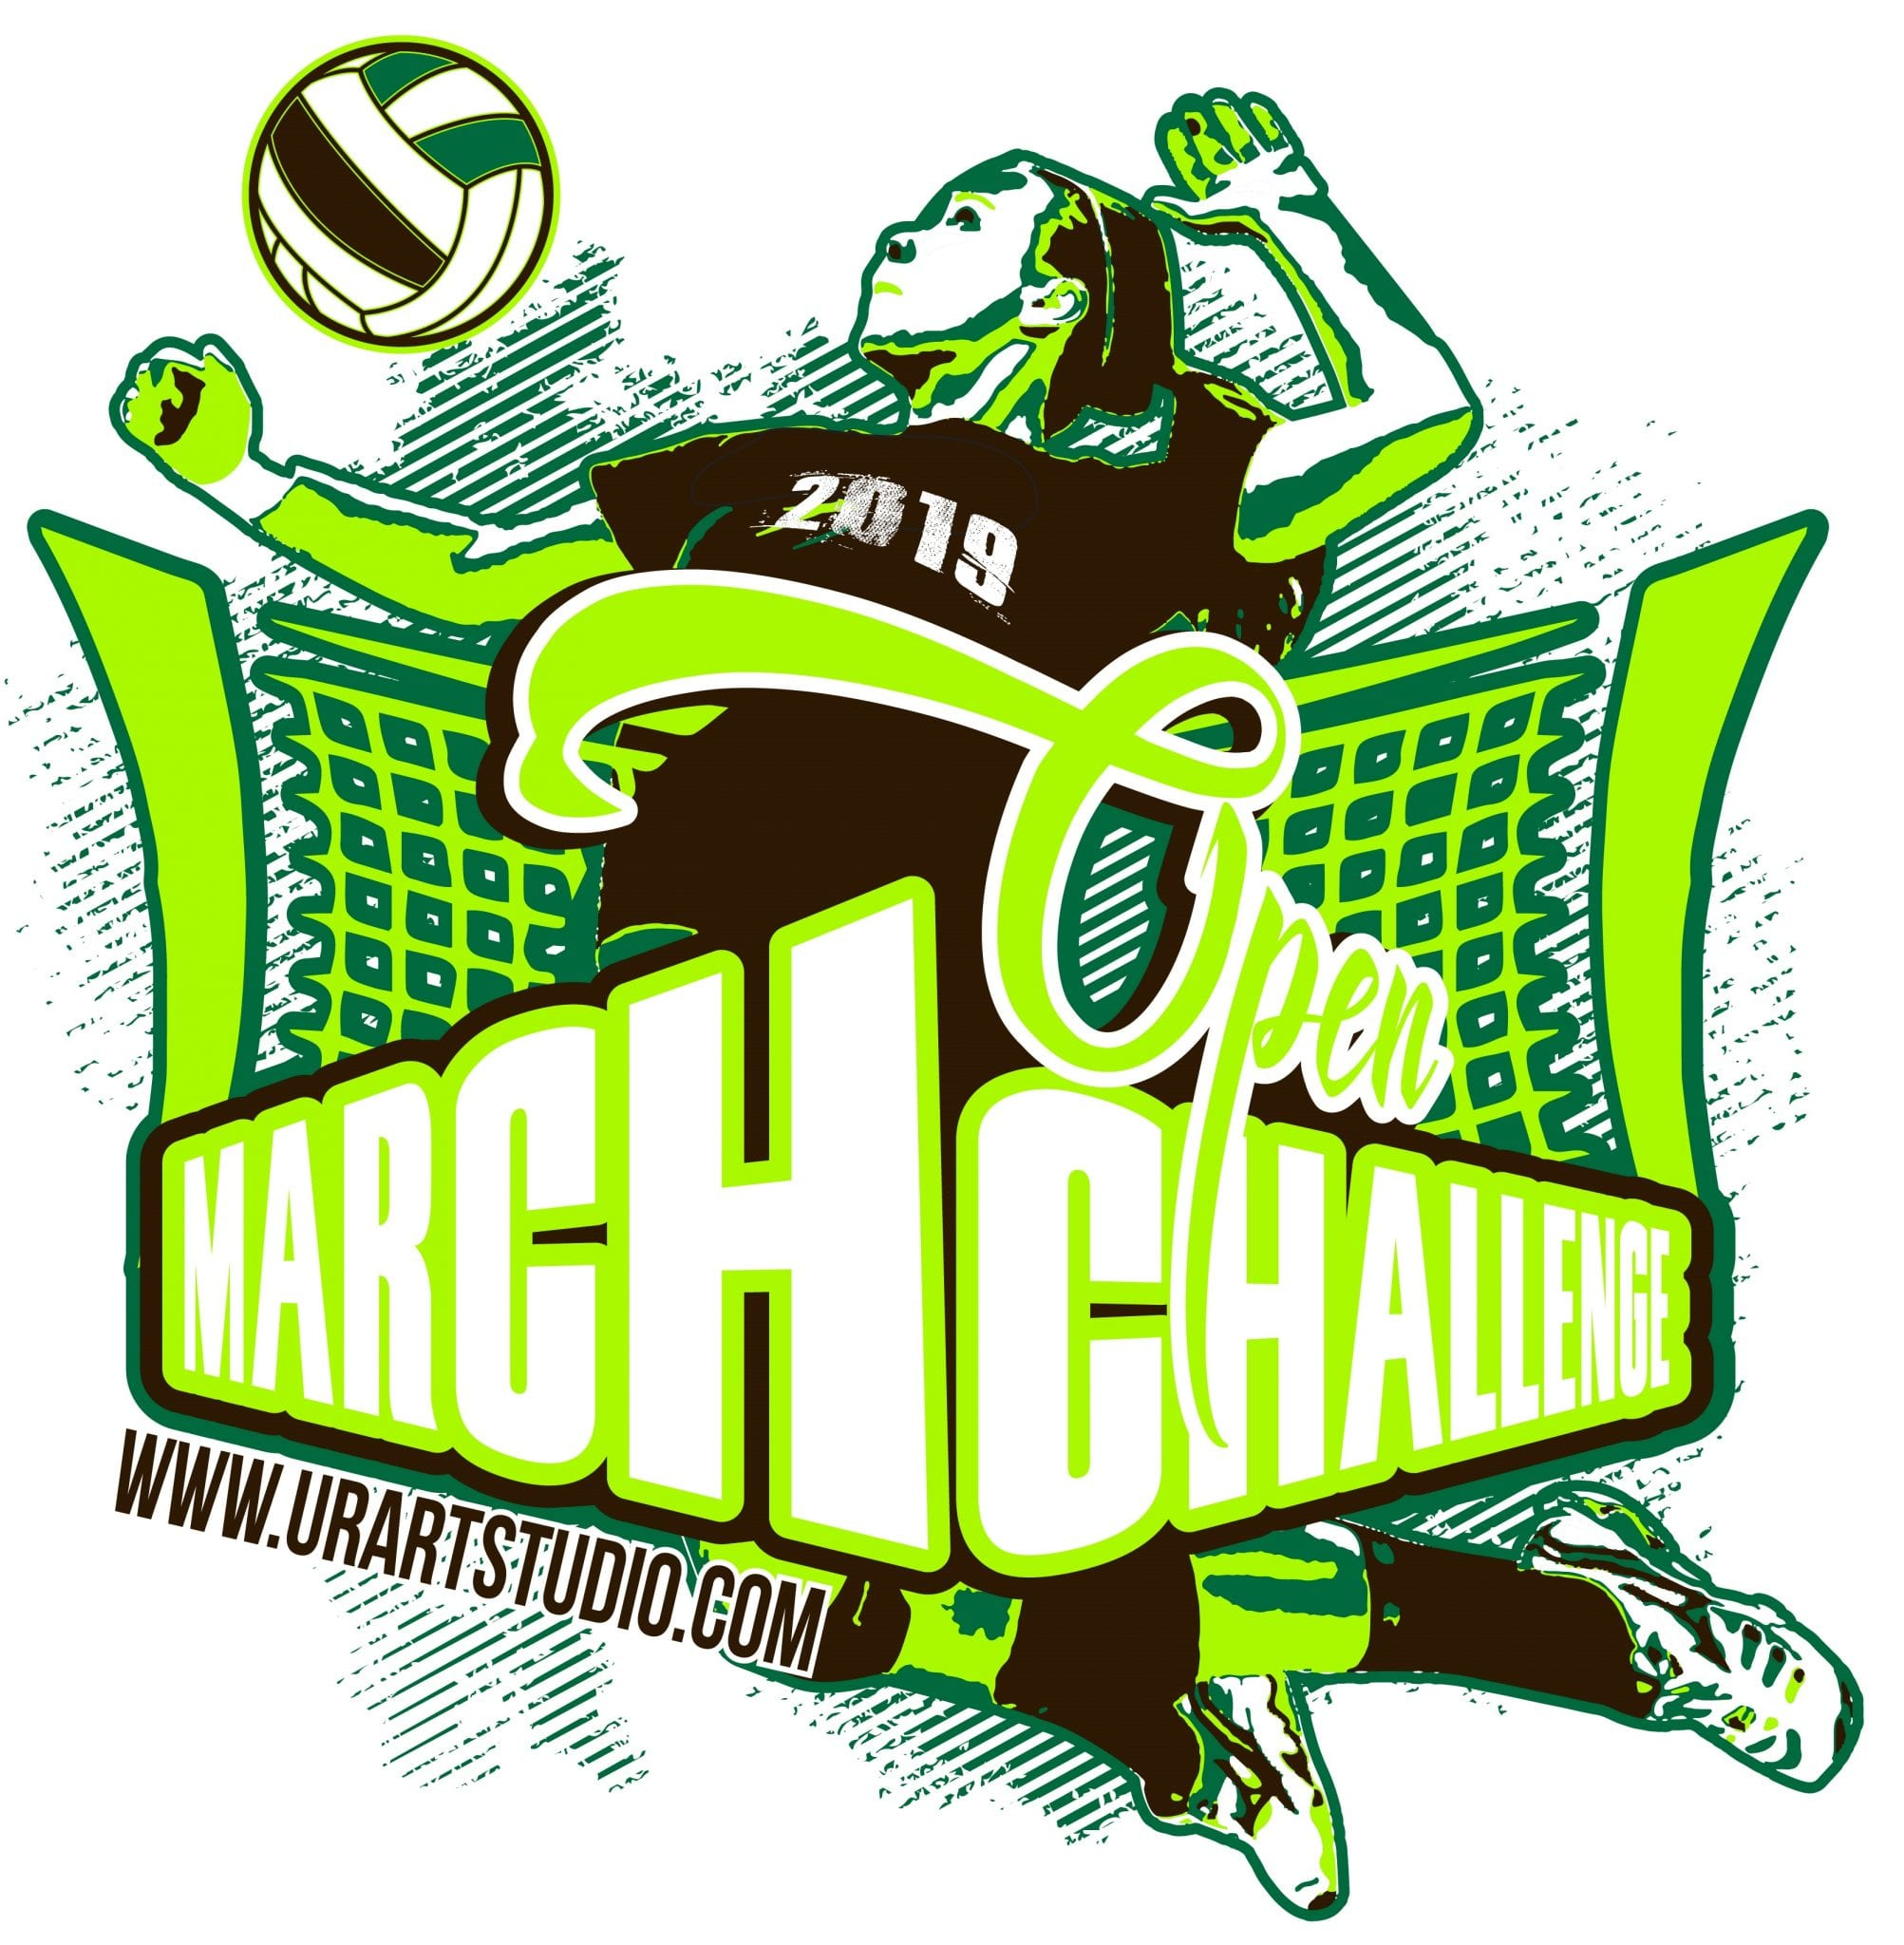 VOLLEYBALL MARCH CHALLENGE 2019 T-shirt vector logo design for print